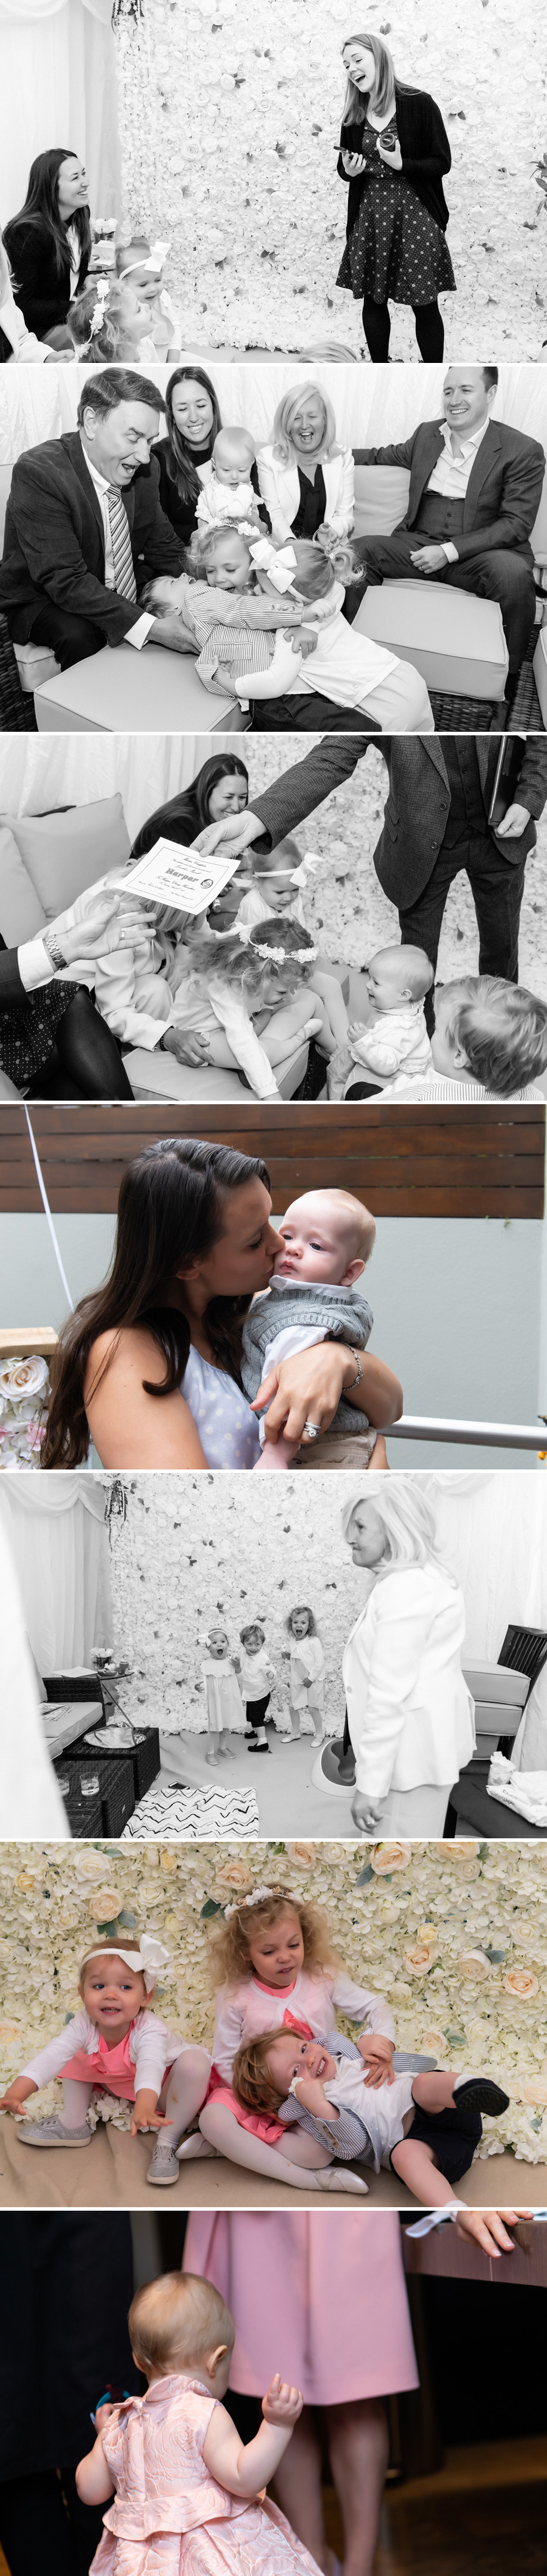 family-event-photography